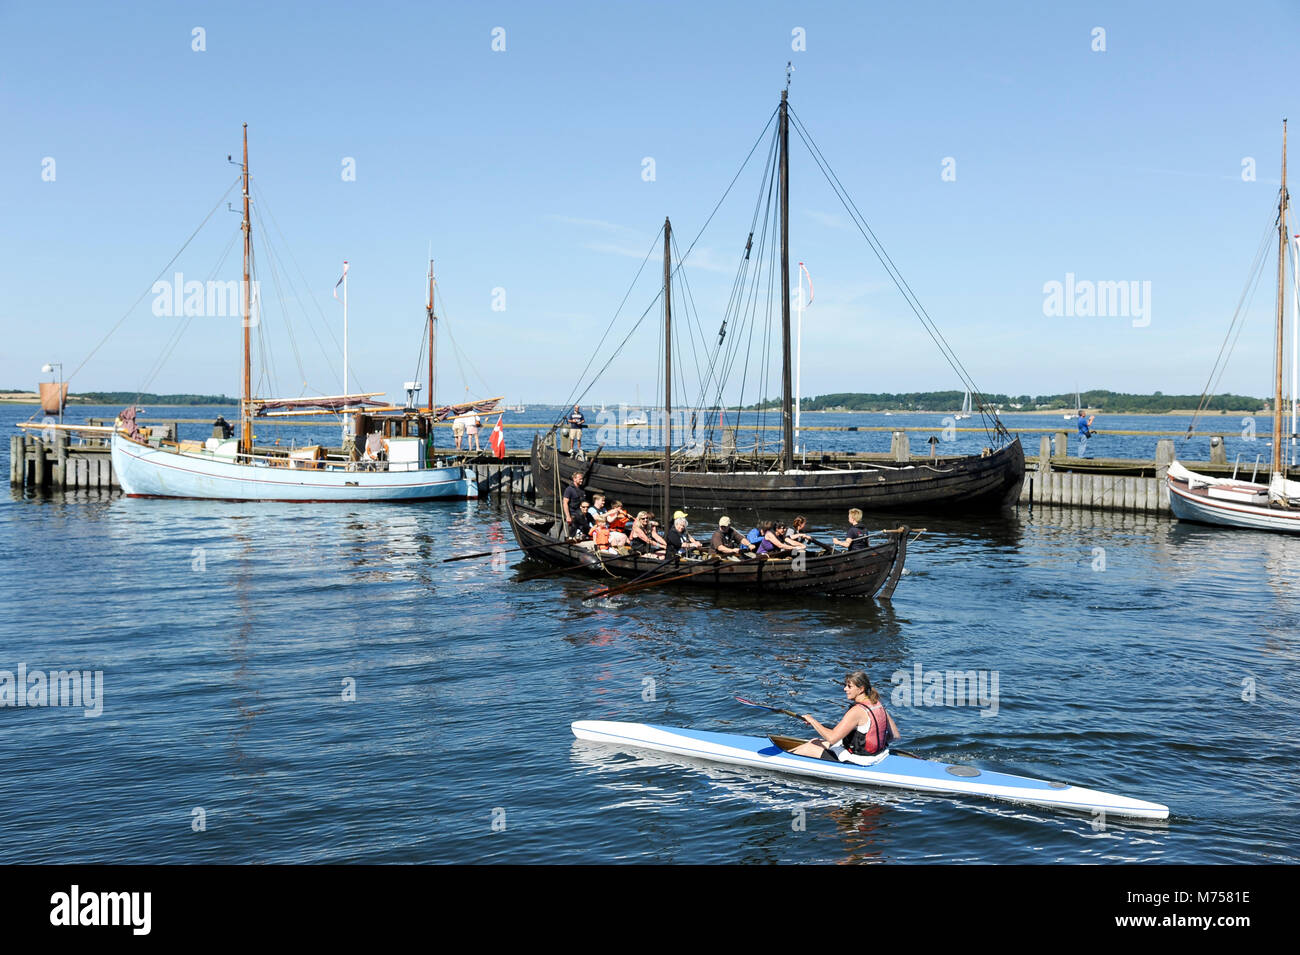 Collection of authentic historic boats from Scandinavia and full scale navigable reconstructions of Viking ships - Stock Image